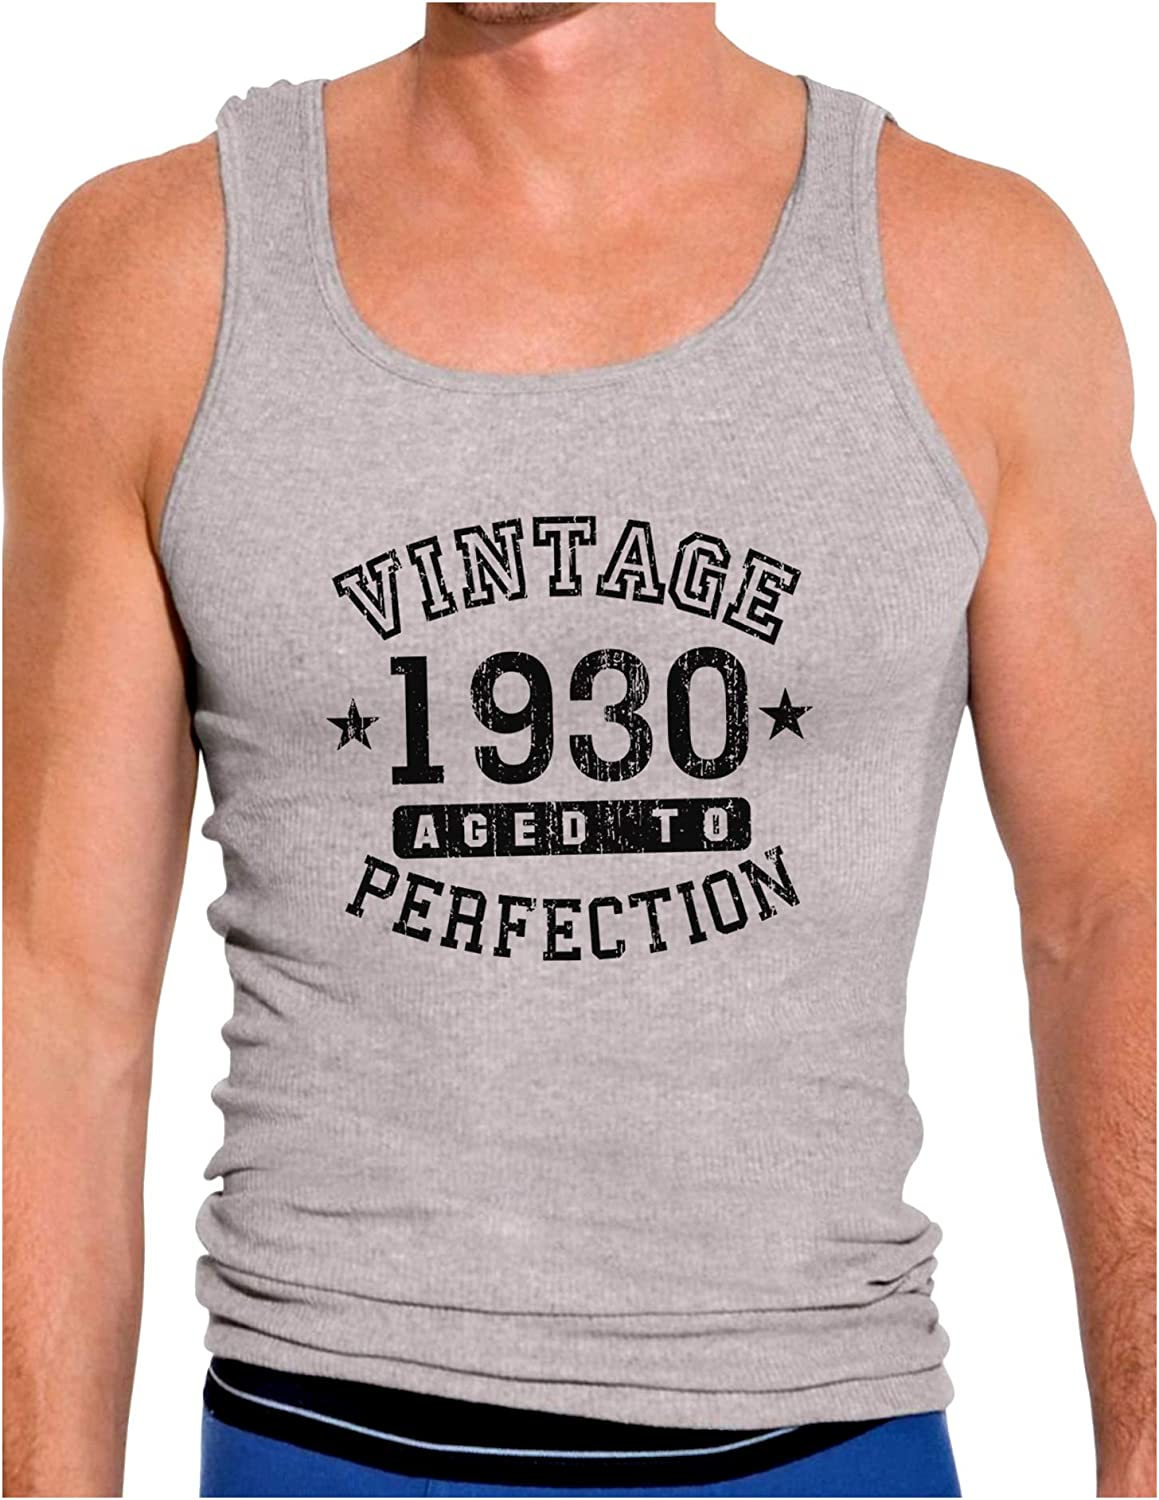 Vintage Birth Year Muscle Shirt Brand TooLoud 1930